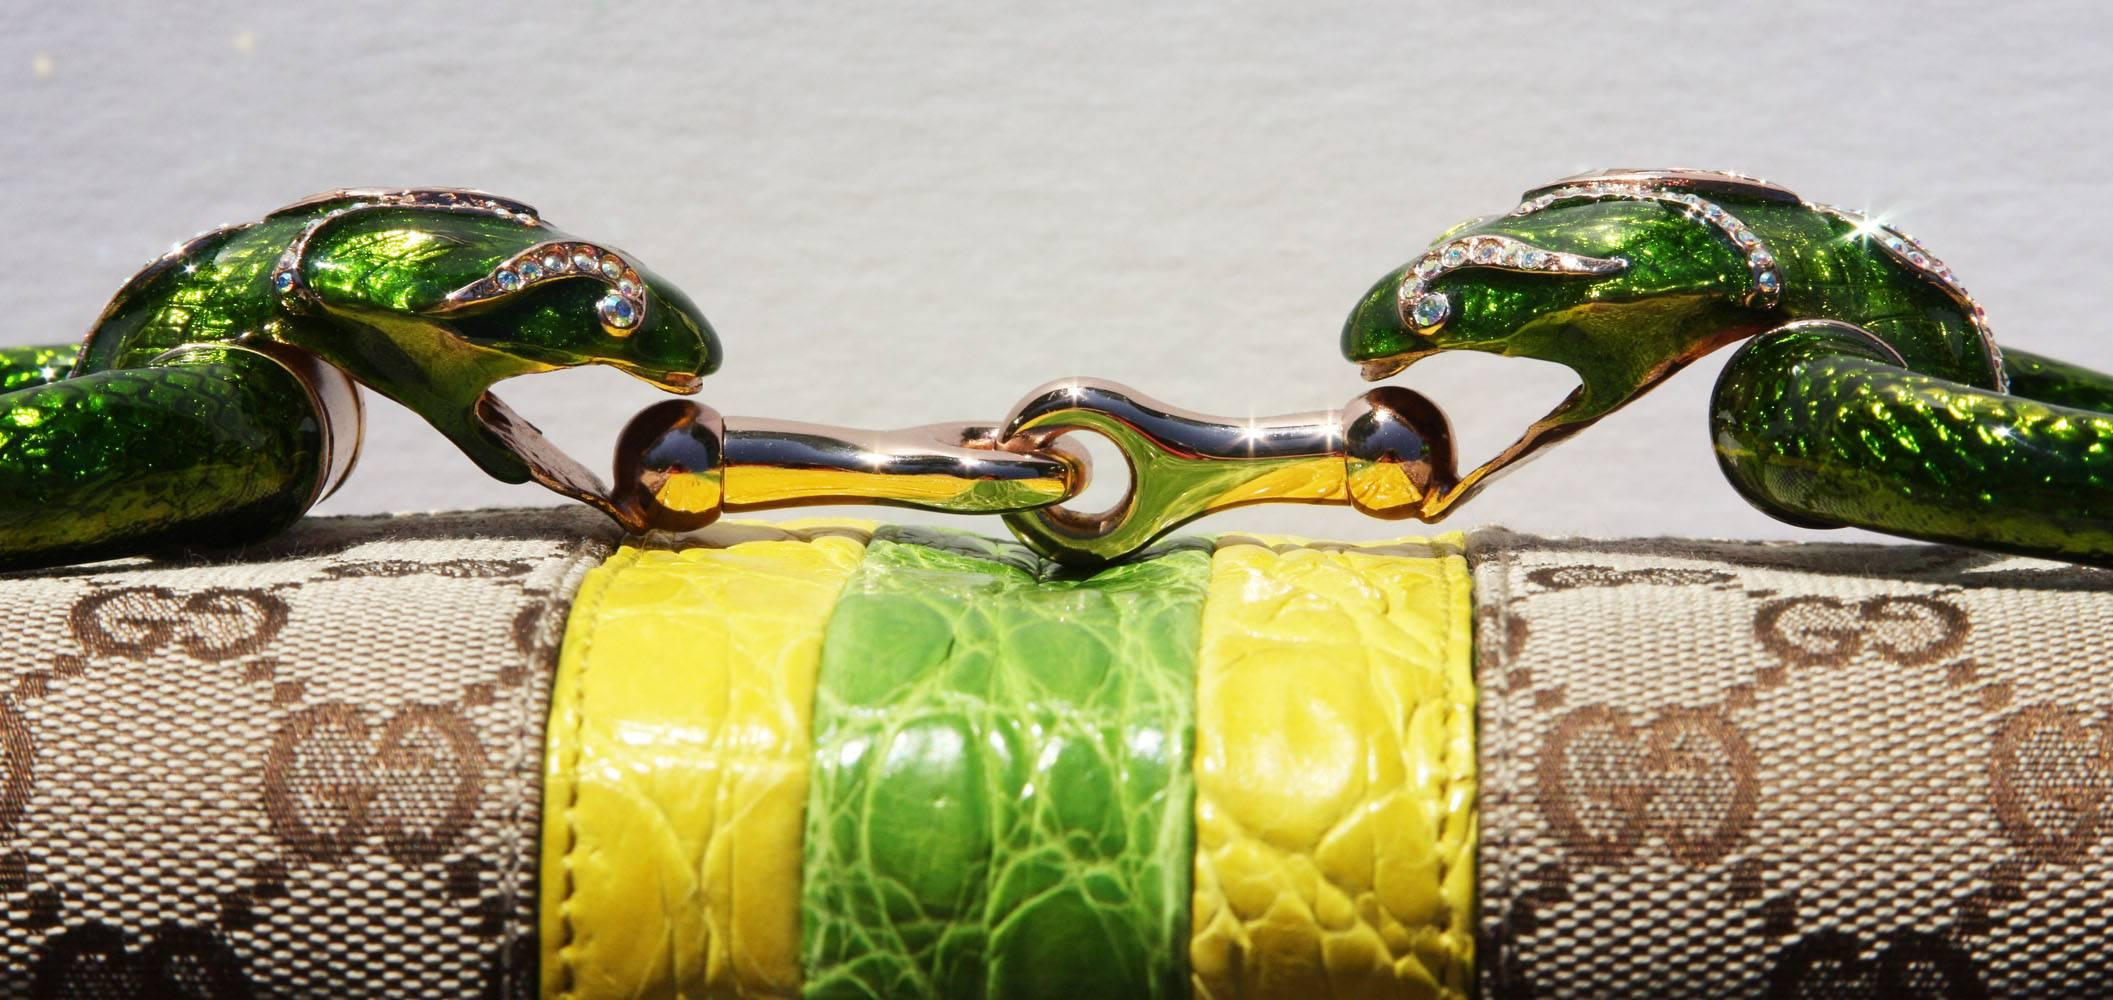 Tom Ford New Tom Ford For Gucci 2004 Crocodile-trimmed Horsebit Jeweled Serpent Clutch OzK3Xk7o